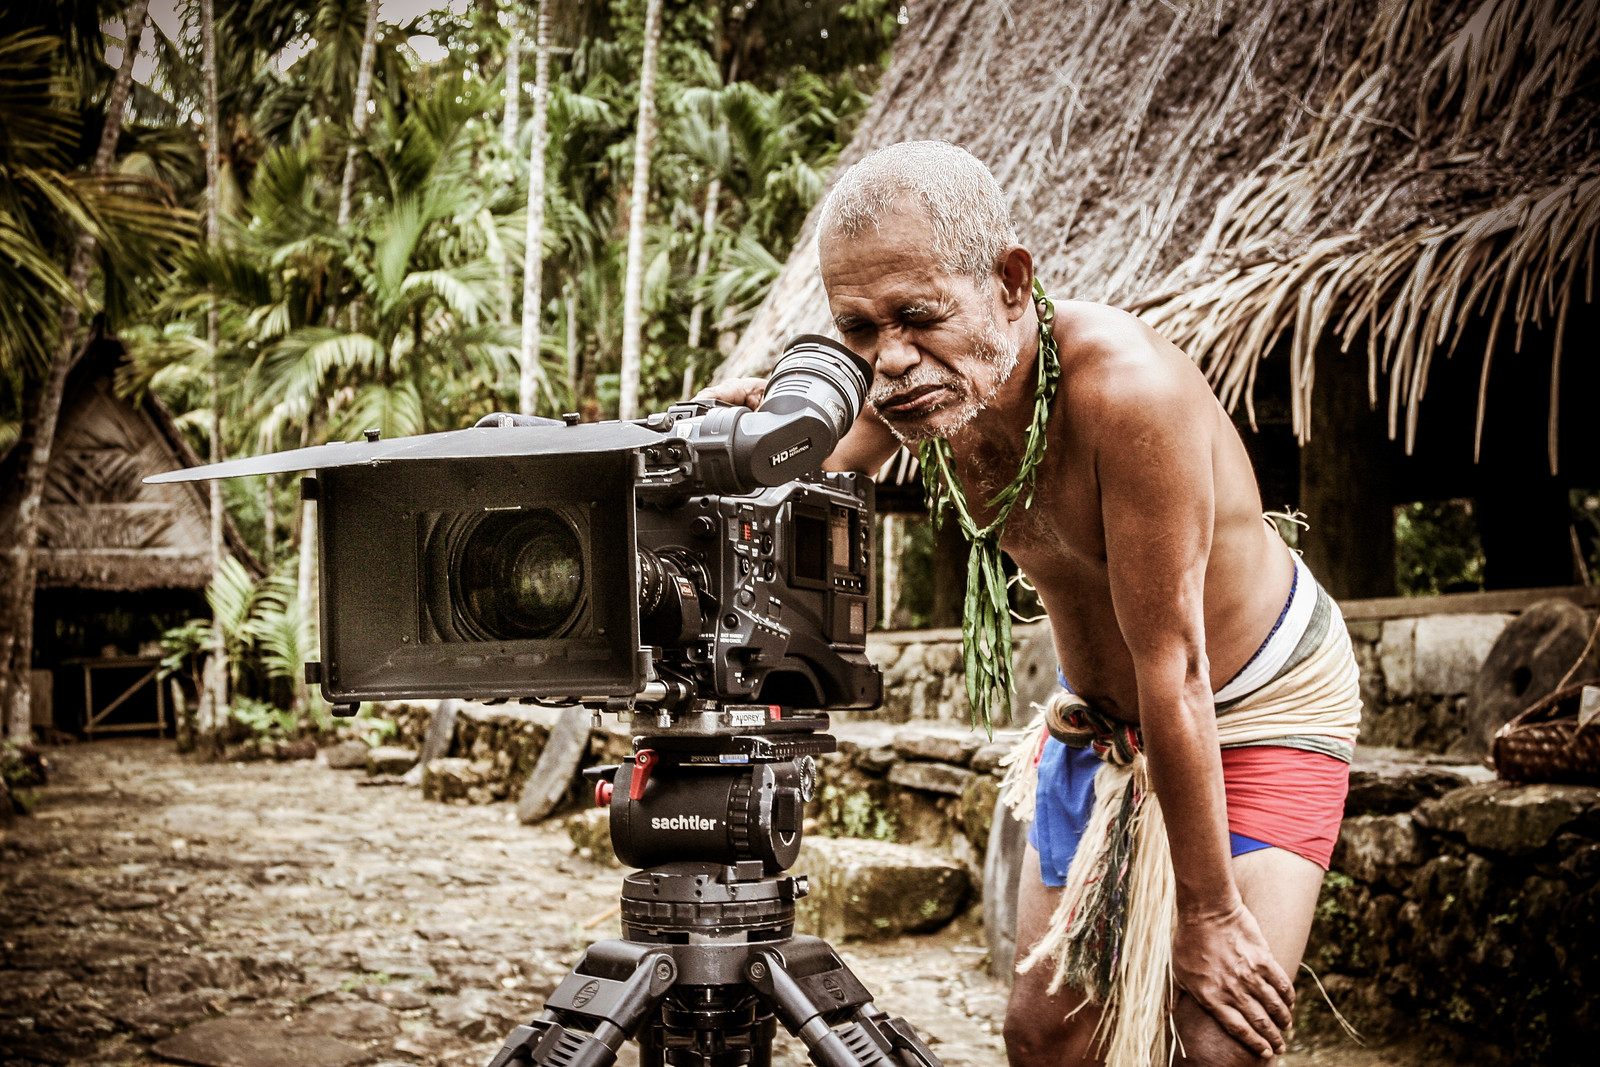 I was filming on the remote Pacific island of Yap - famous for its giant stone money. A local man, with a mouth stained red from the Betle nut he was chewing, was fascinated by our camera and so I let him have a go. #BBCEarth #BBC #EarthOnLocation #Yap #Micronesia #Pacific #Island #People #Camera #Technology